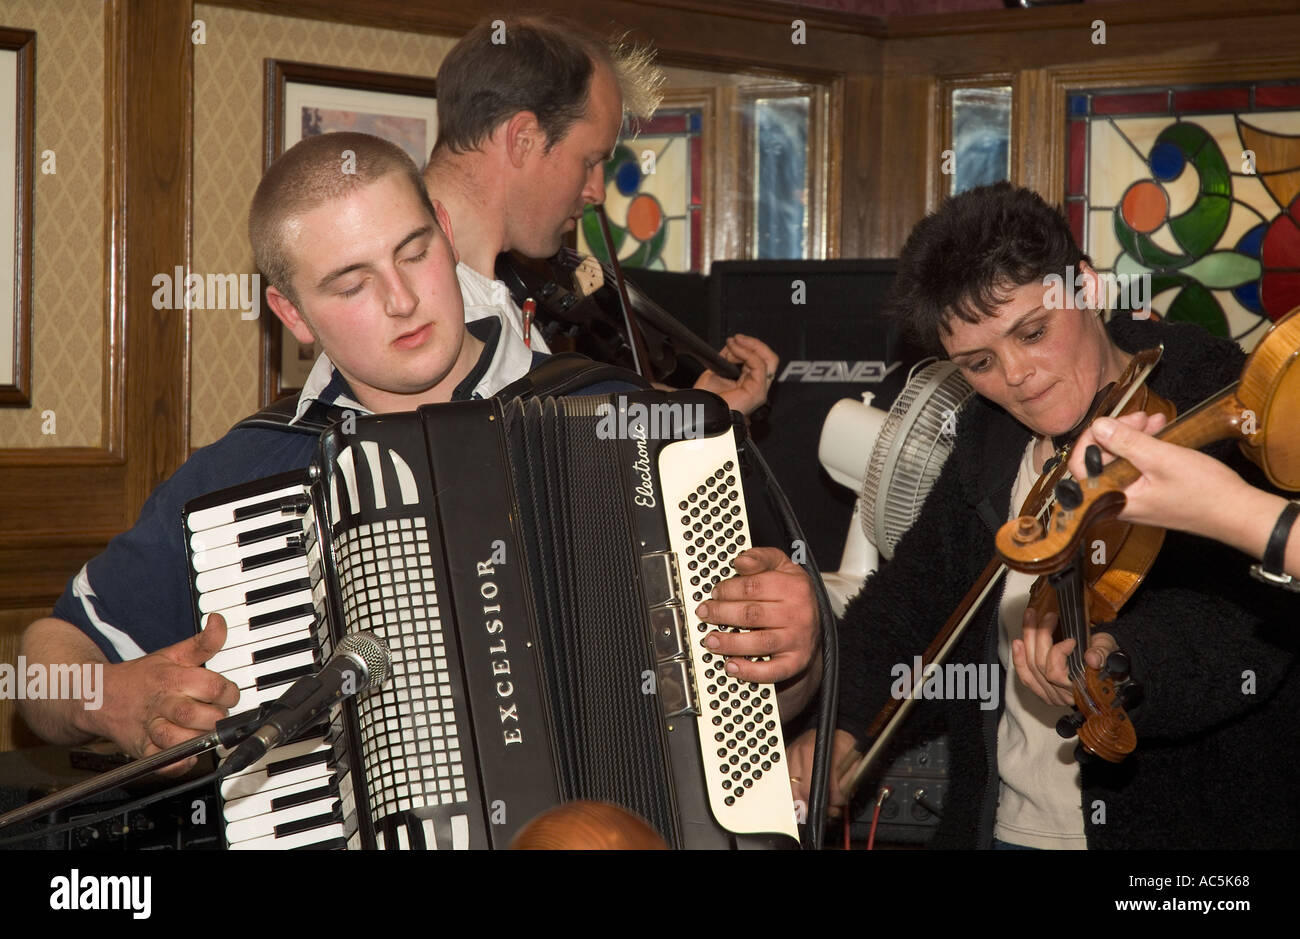 dh Orkney Folk Festival STROMNESS ORKNEY Musicians playing Accordion fiddles Royal Hotel lounge bar Stock Photo